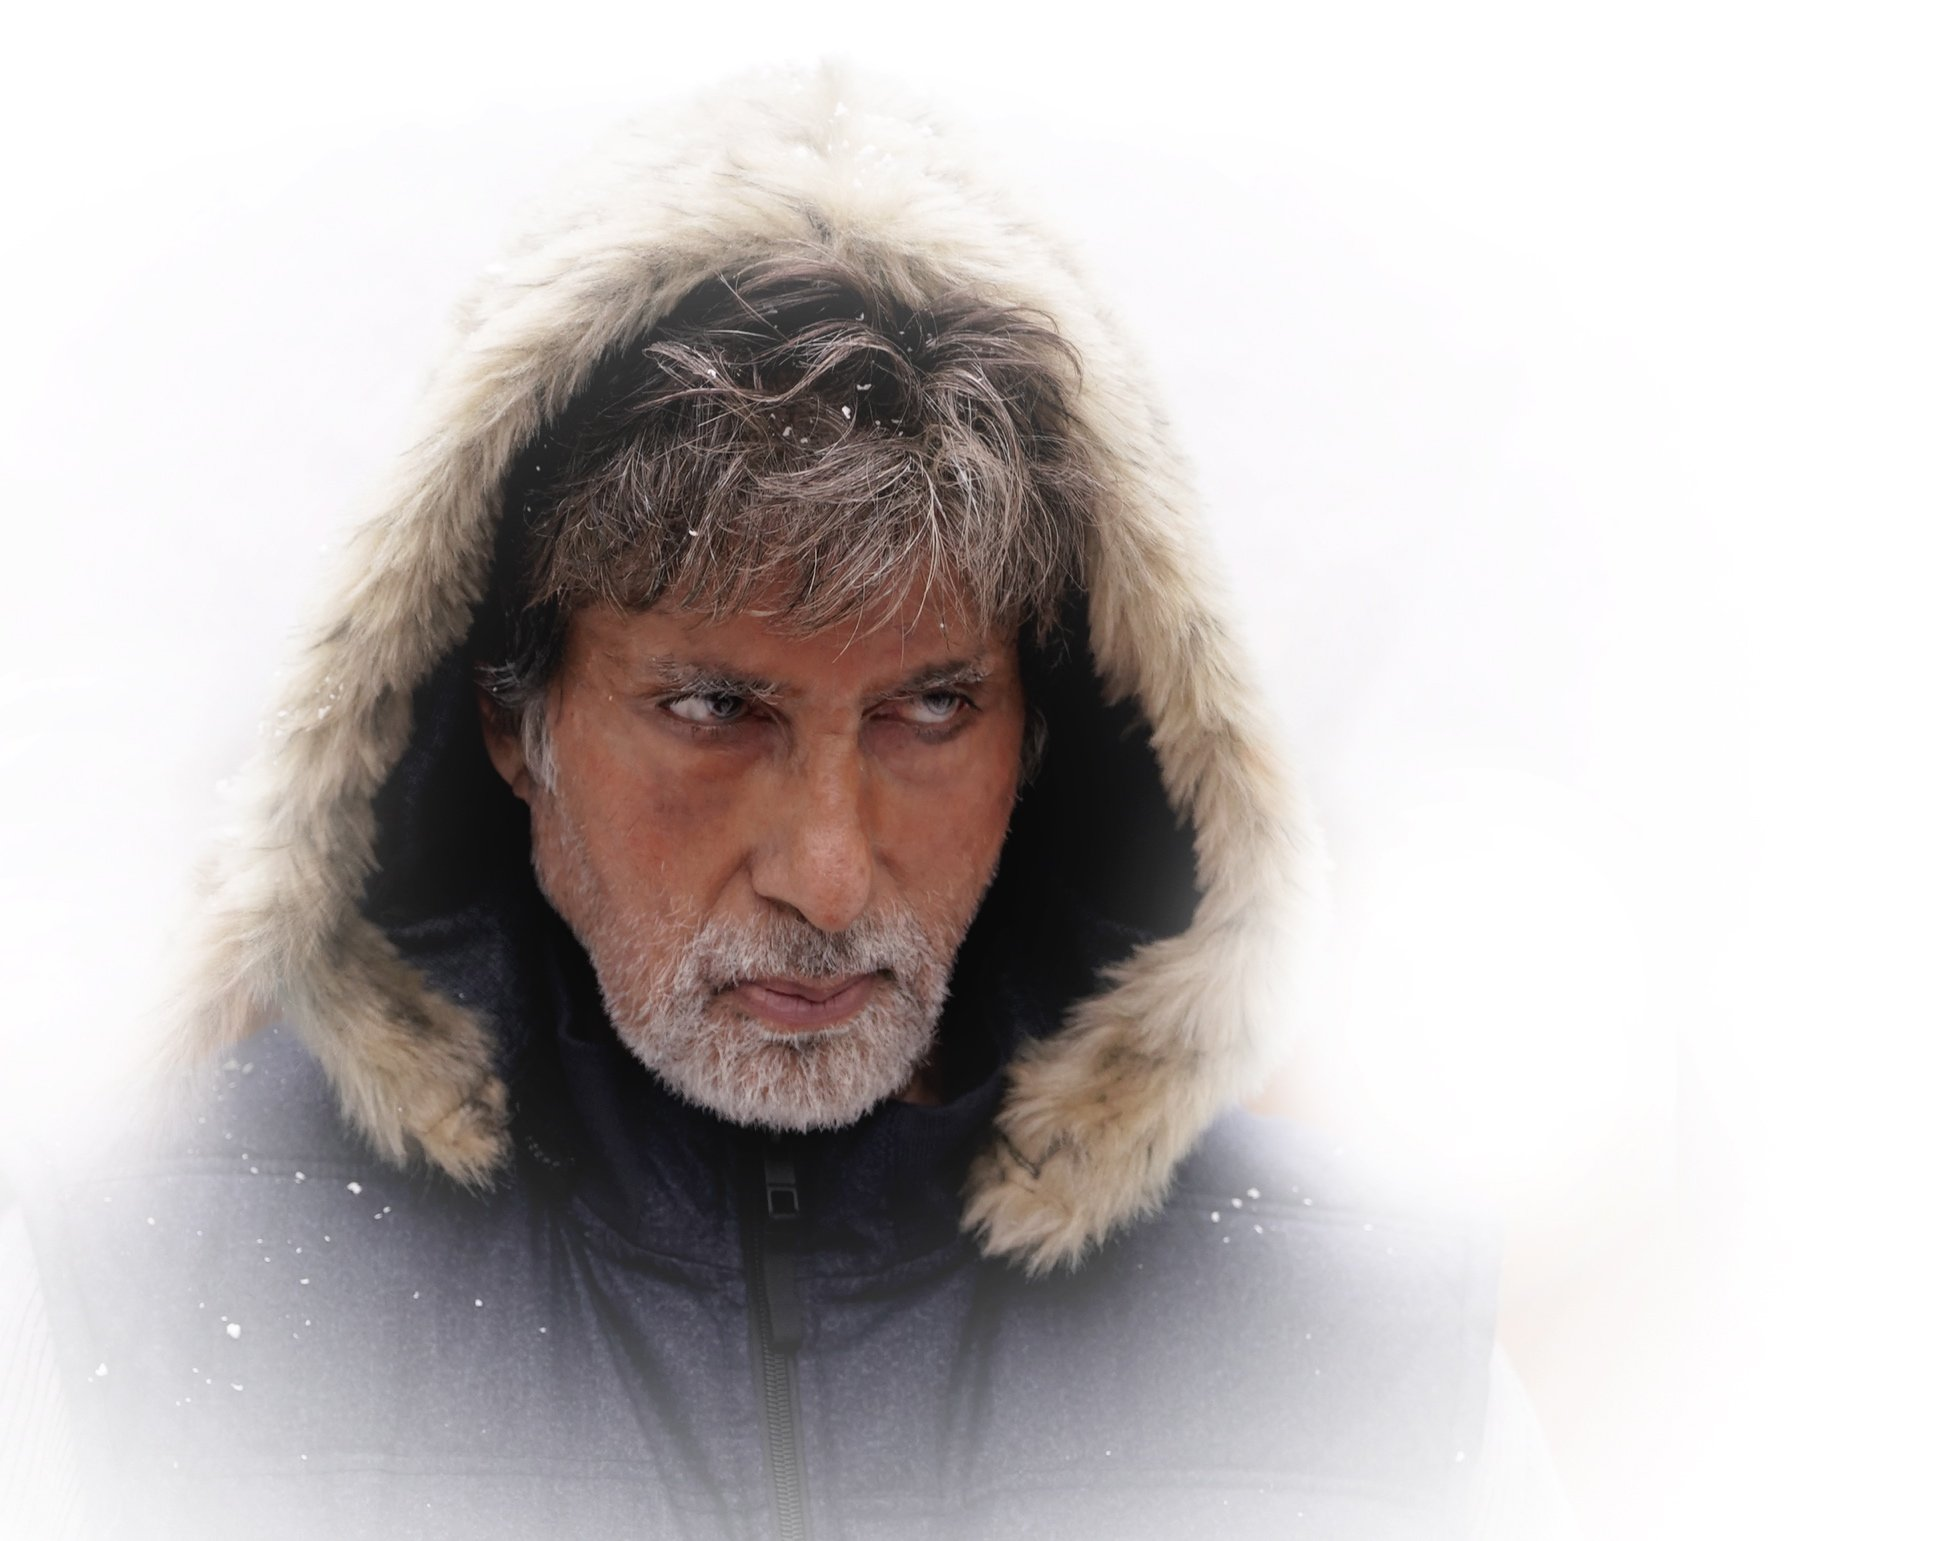 T 2821 - From 'iglooland' with love .. https://t.co/jasXdnQIOt